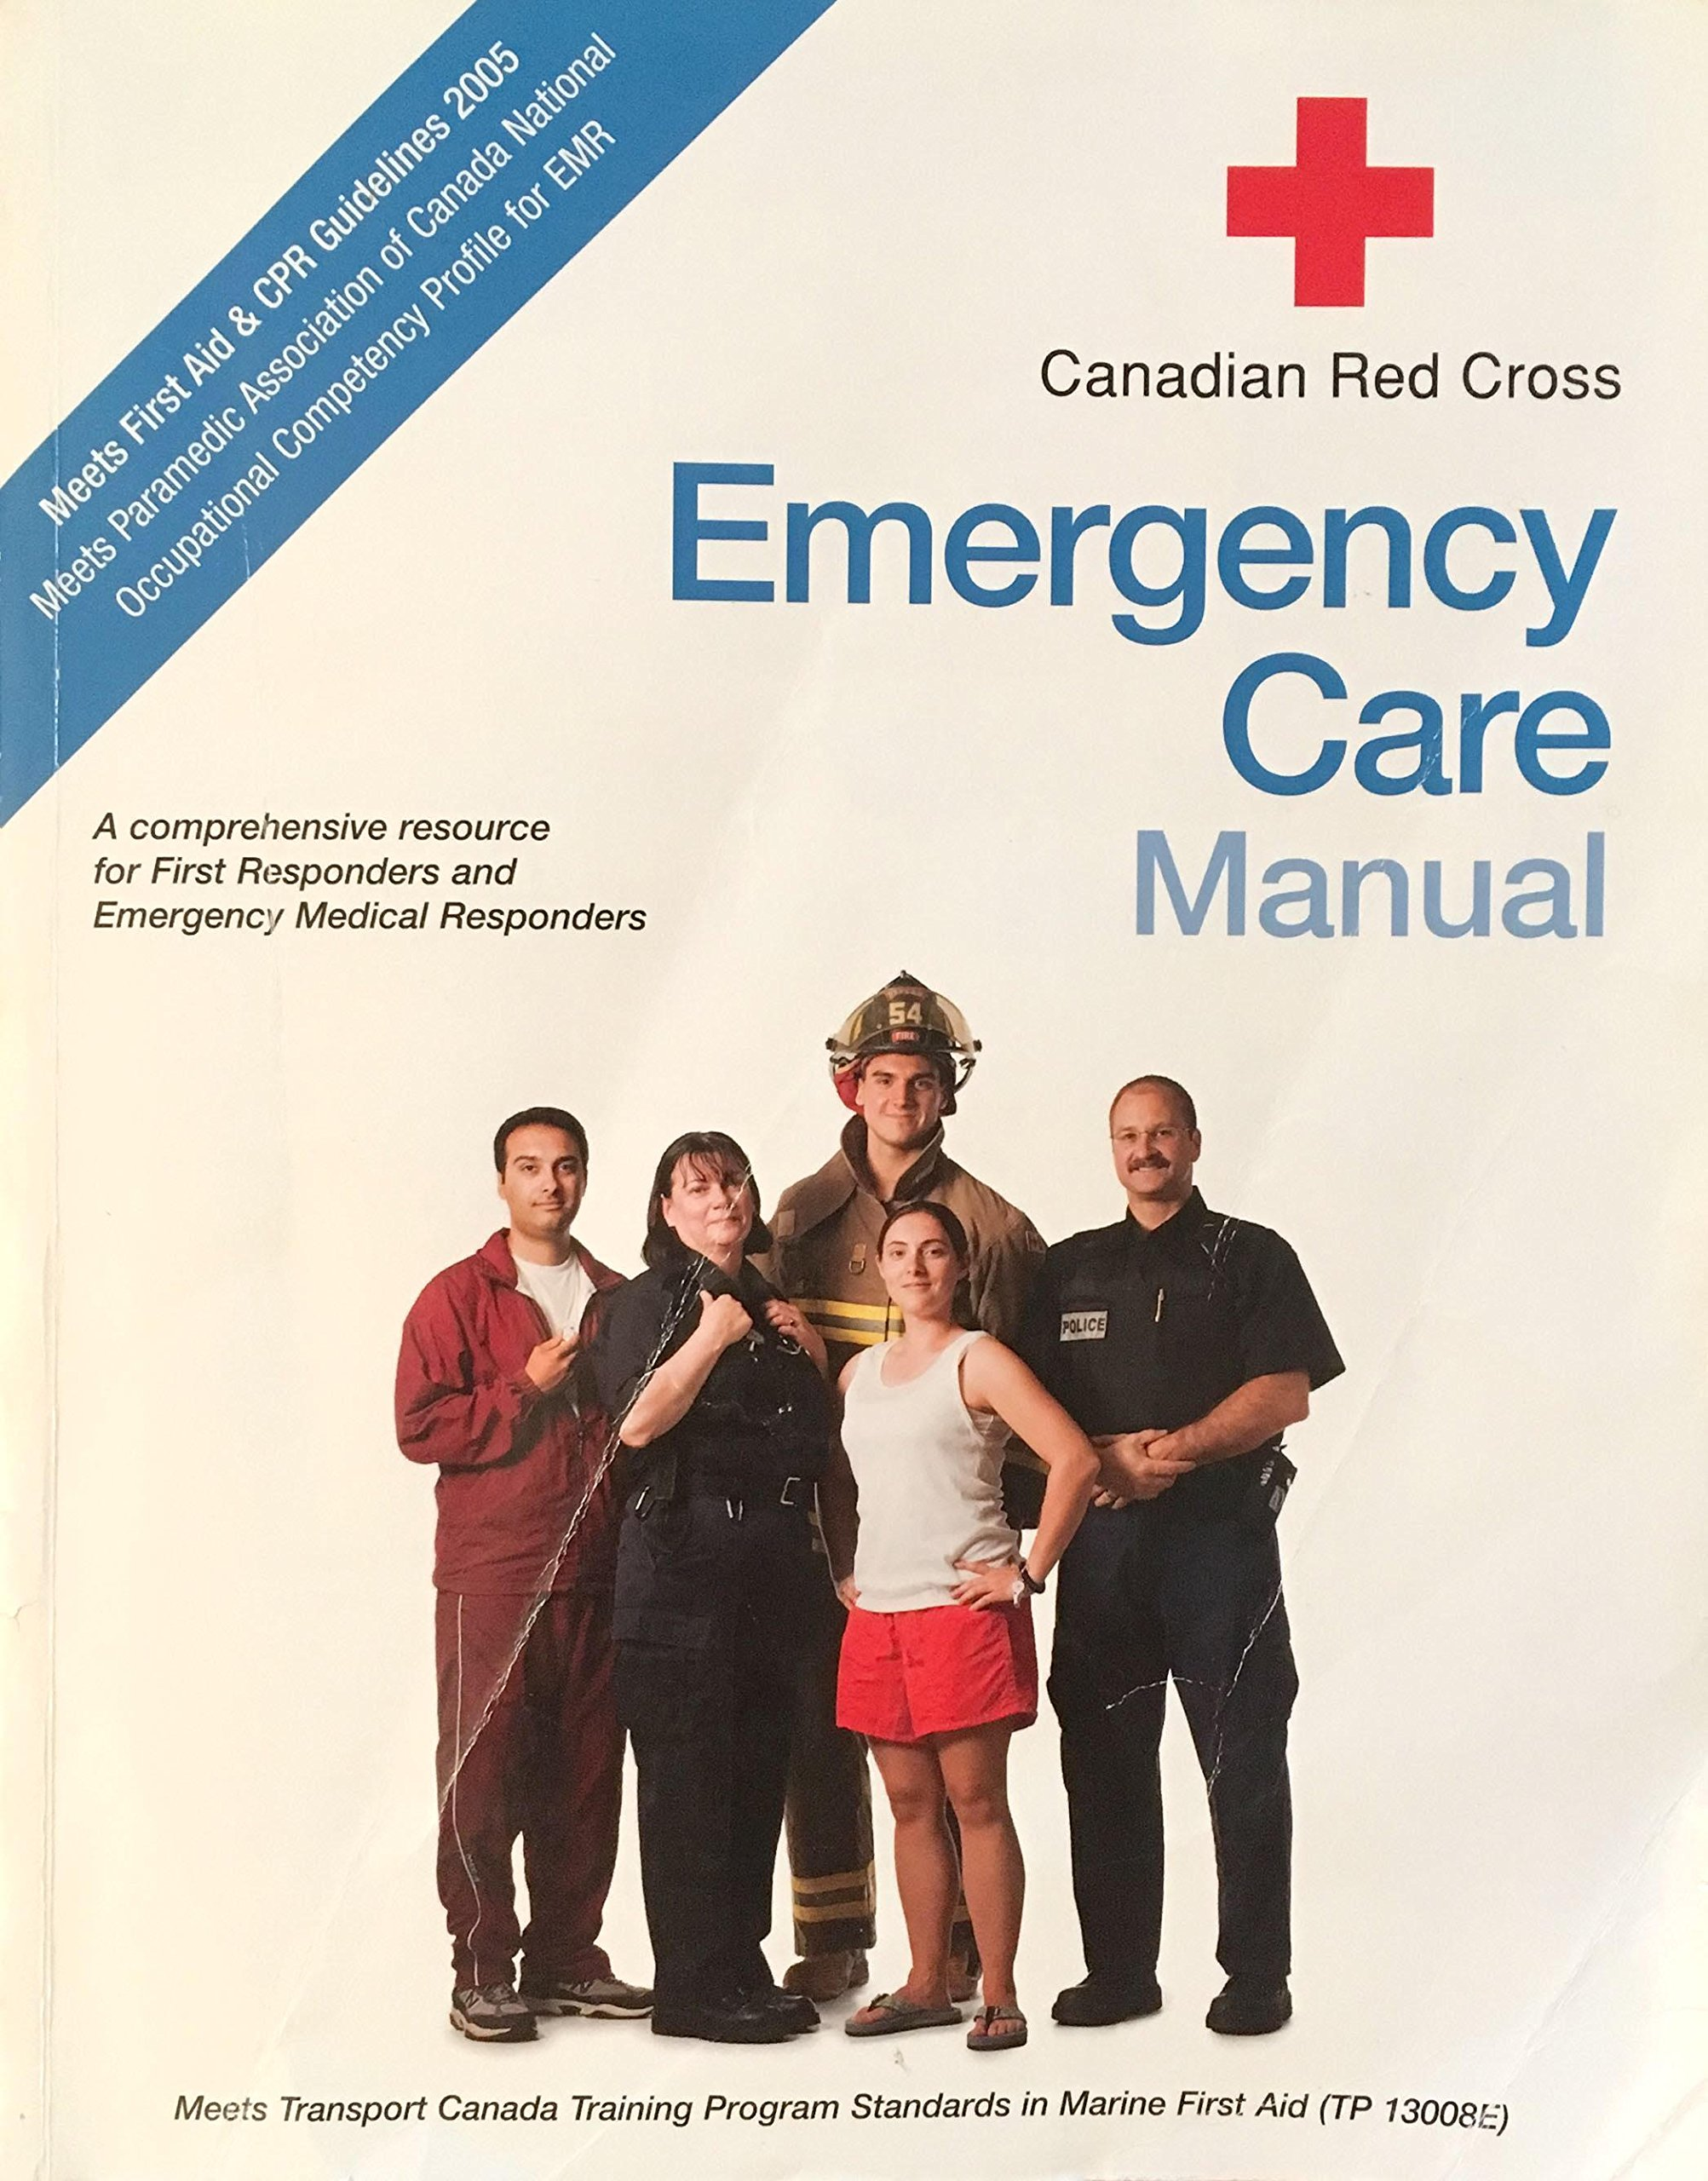 Canadian Red Cross Emergency Care Manual: StayWell; Canadian Red Cross  Society: 9781584804048: Books - Amazon.ca